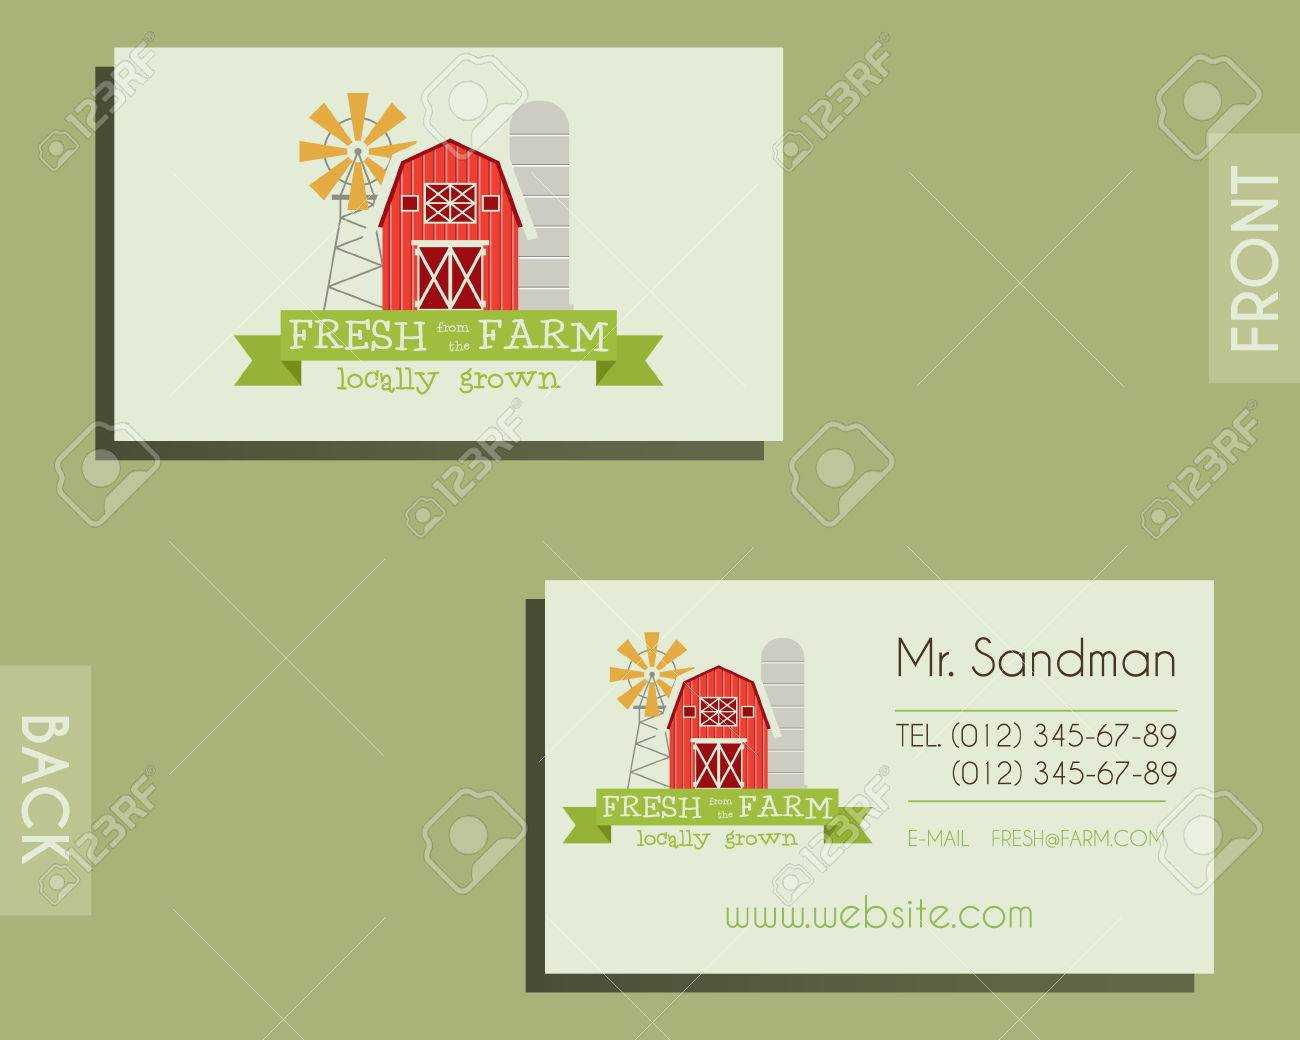 Eco, Organic Visiting Card Template. For Natural Shop, Farm Products And  Other Bio, Organic Business. Ecology Theme. Eco Design. Vector Illustration Intended For Bio Card Template